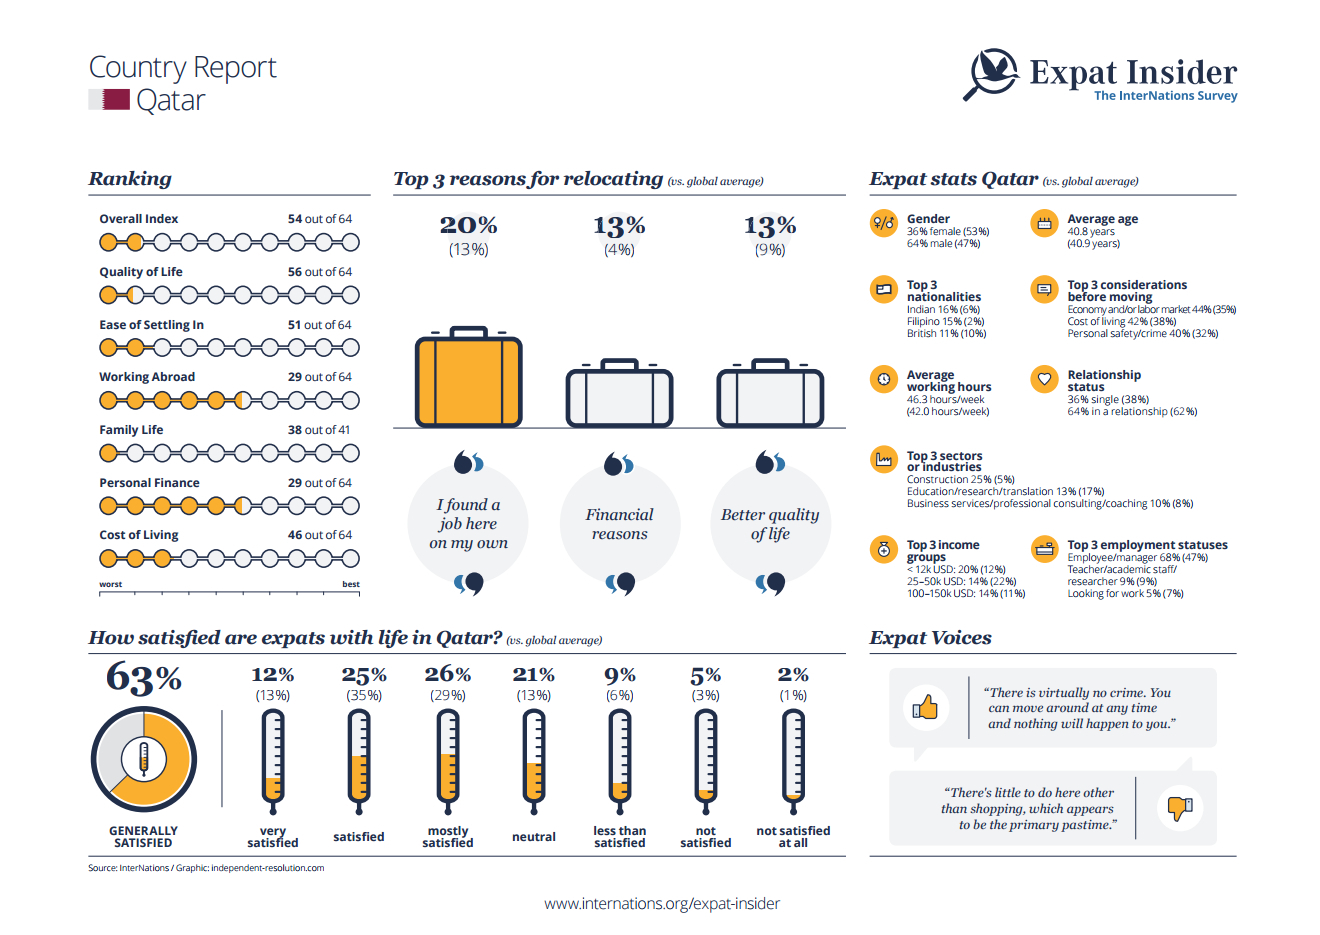 Expat statistics for Qatar - infographic